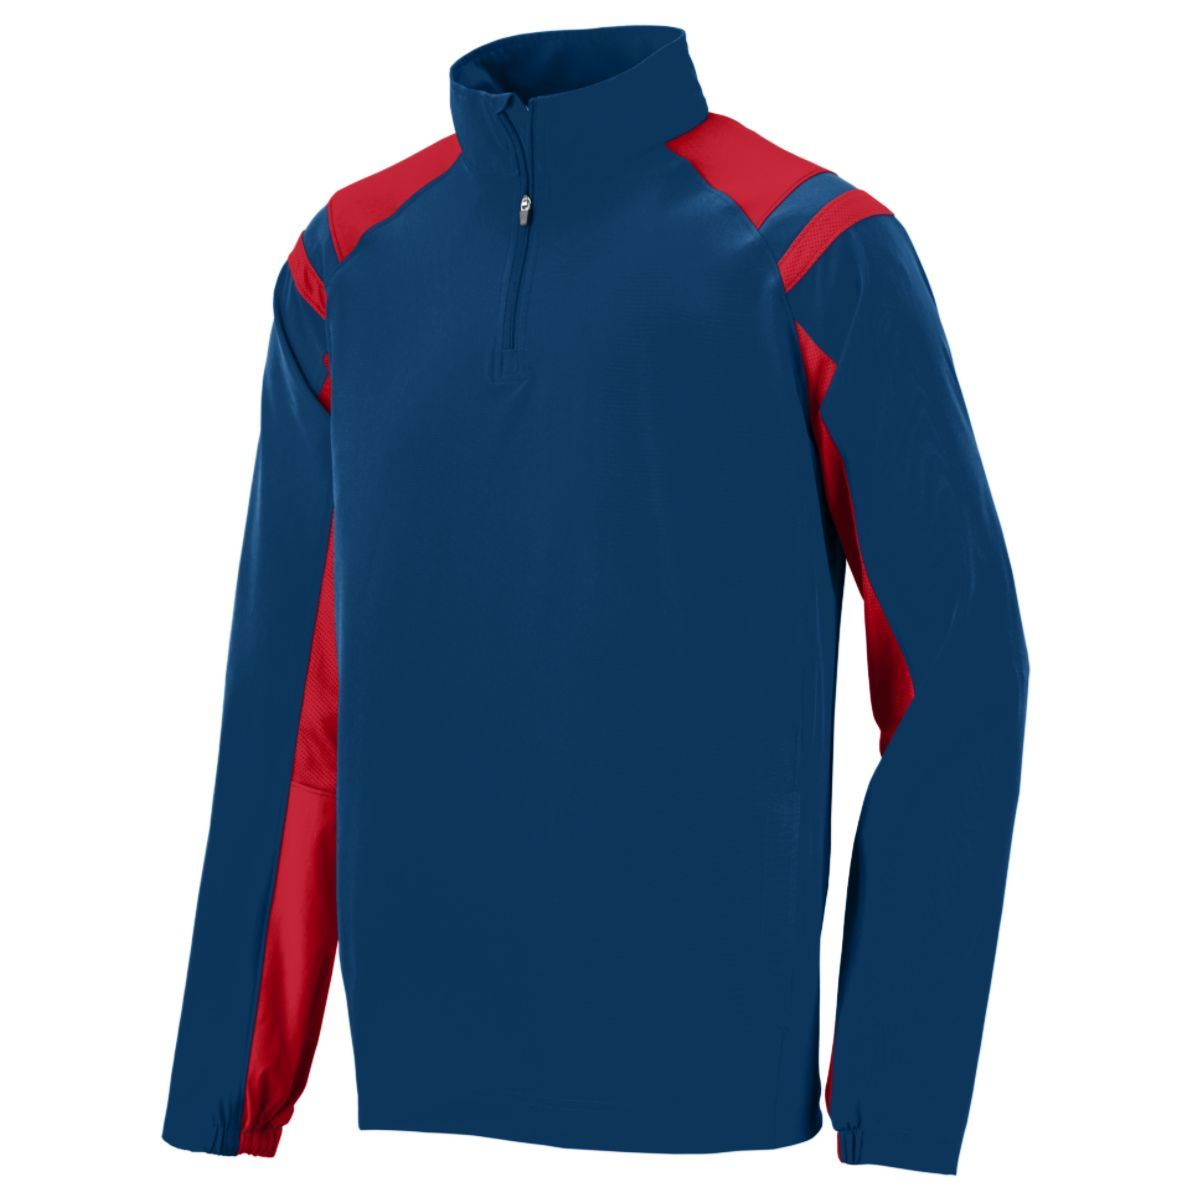 Doppler Pullover - NAVY/RED